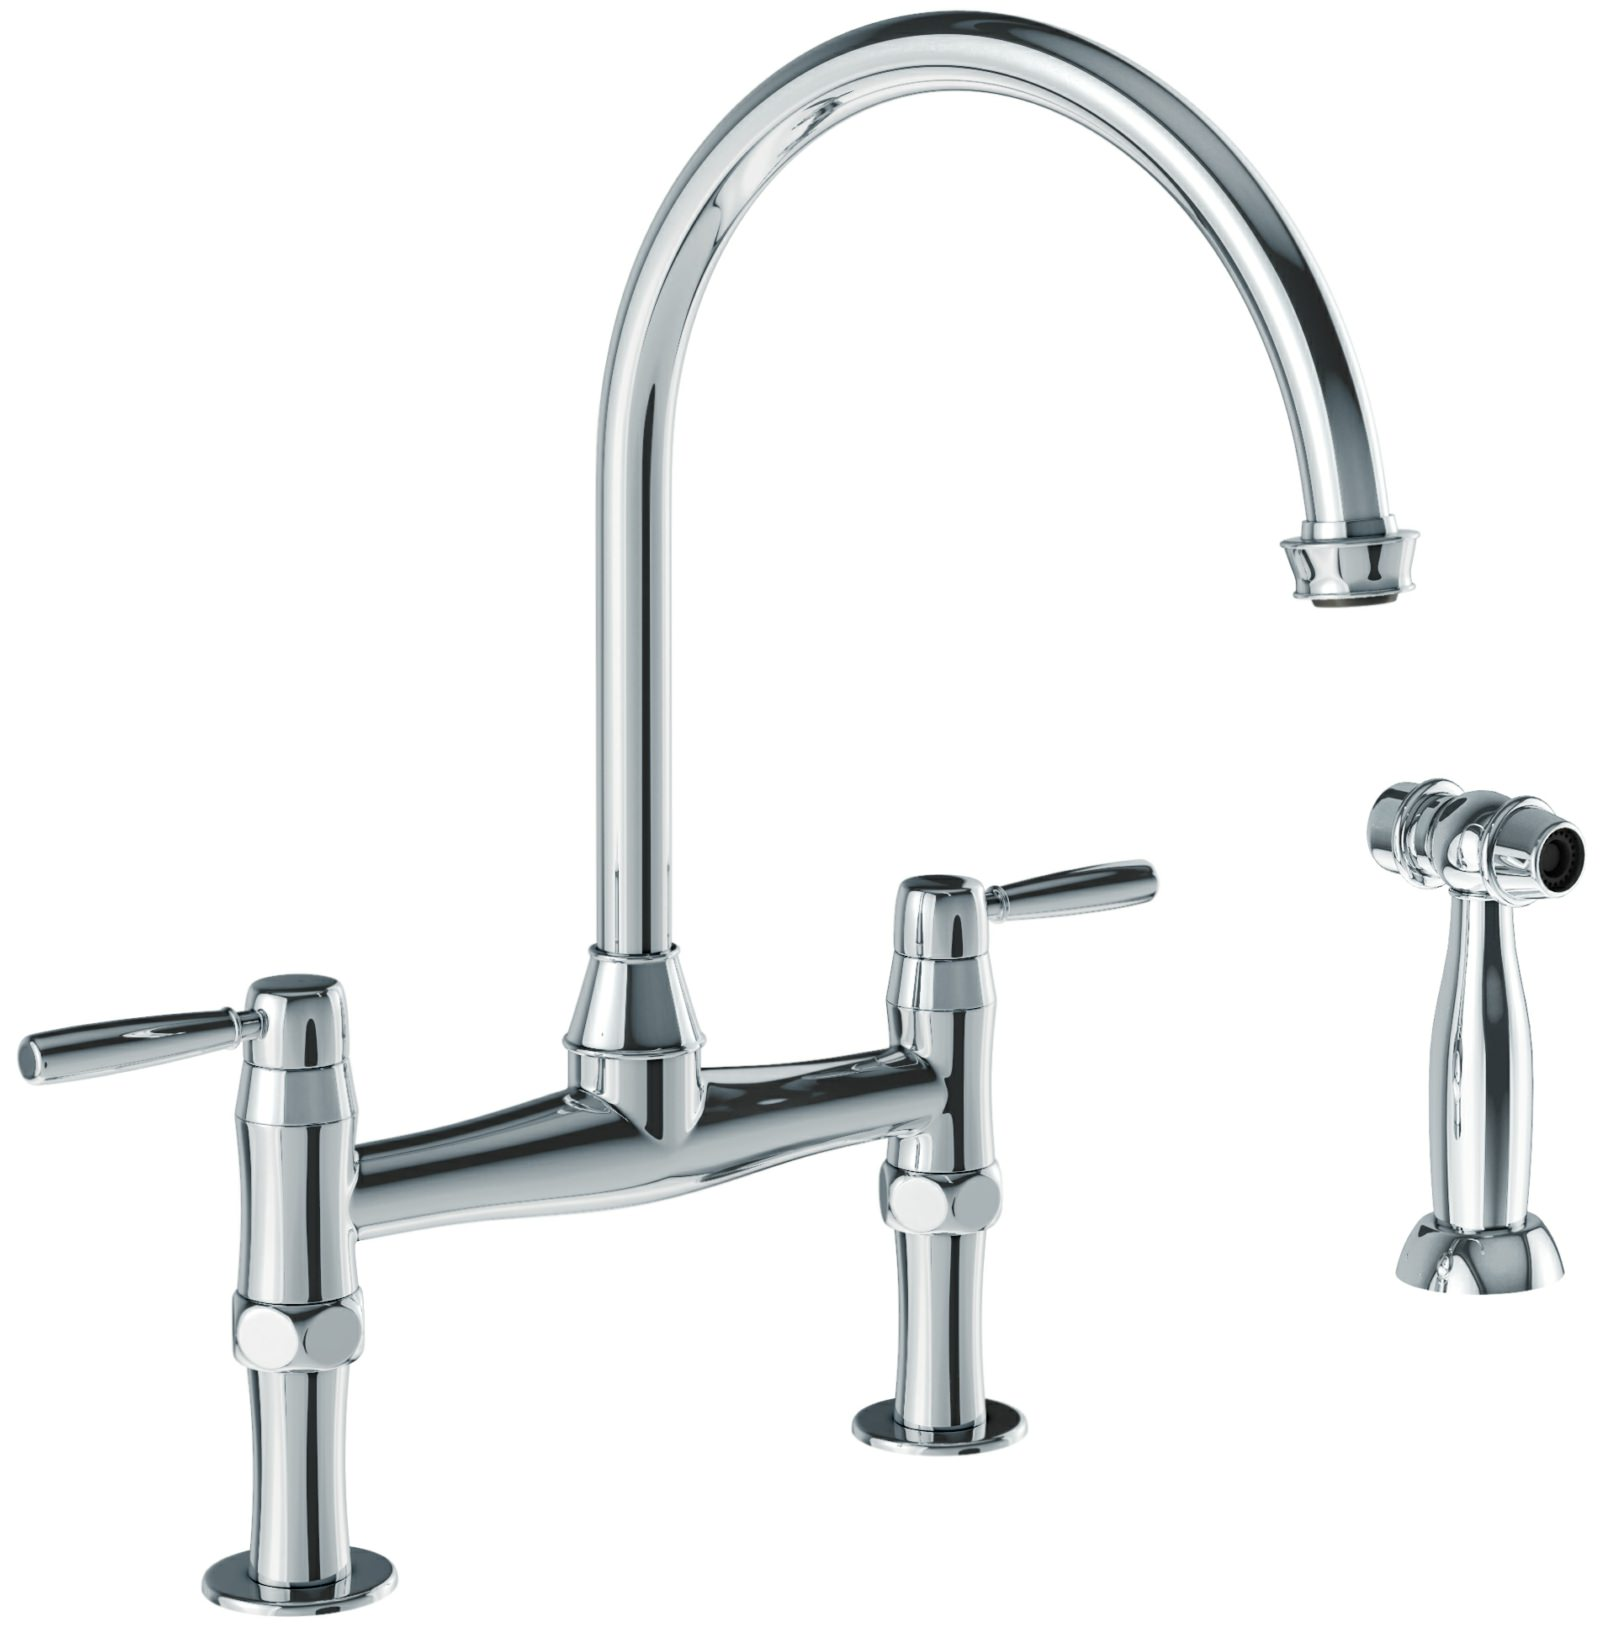 Abode Brompton Chrome Bridge Kitchen Mixer Tap With